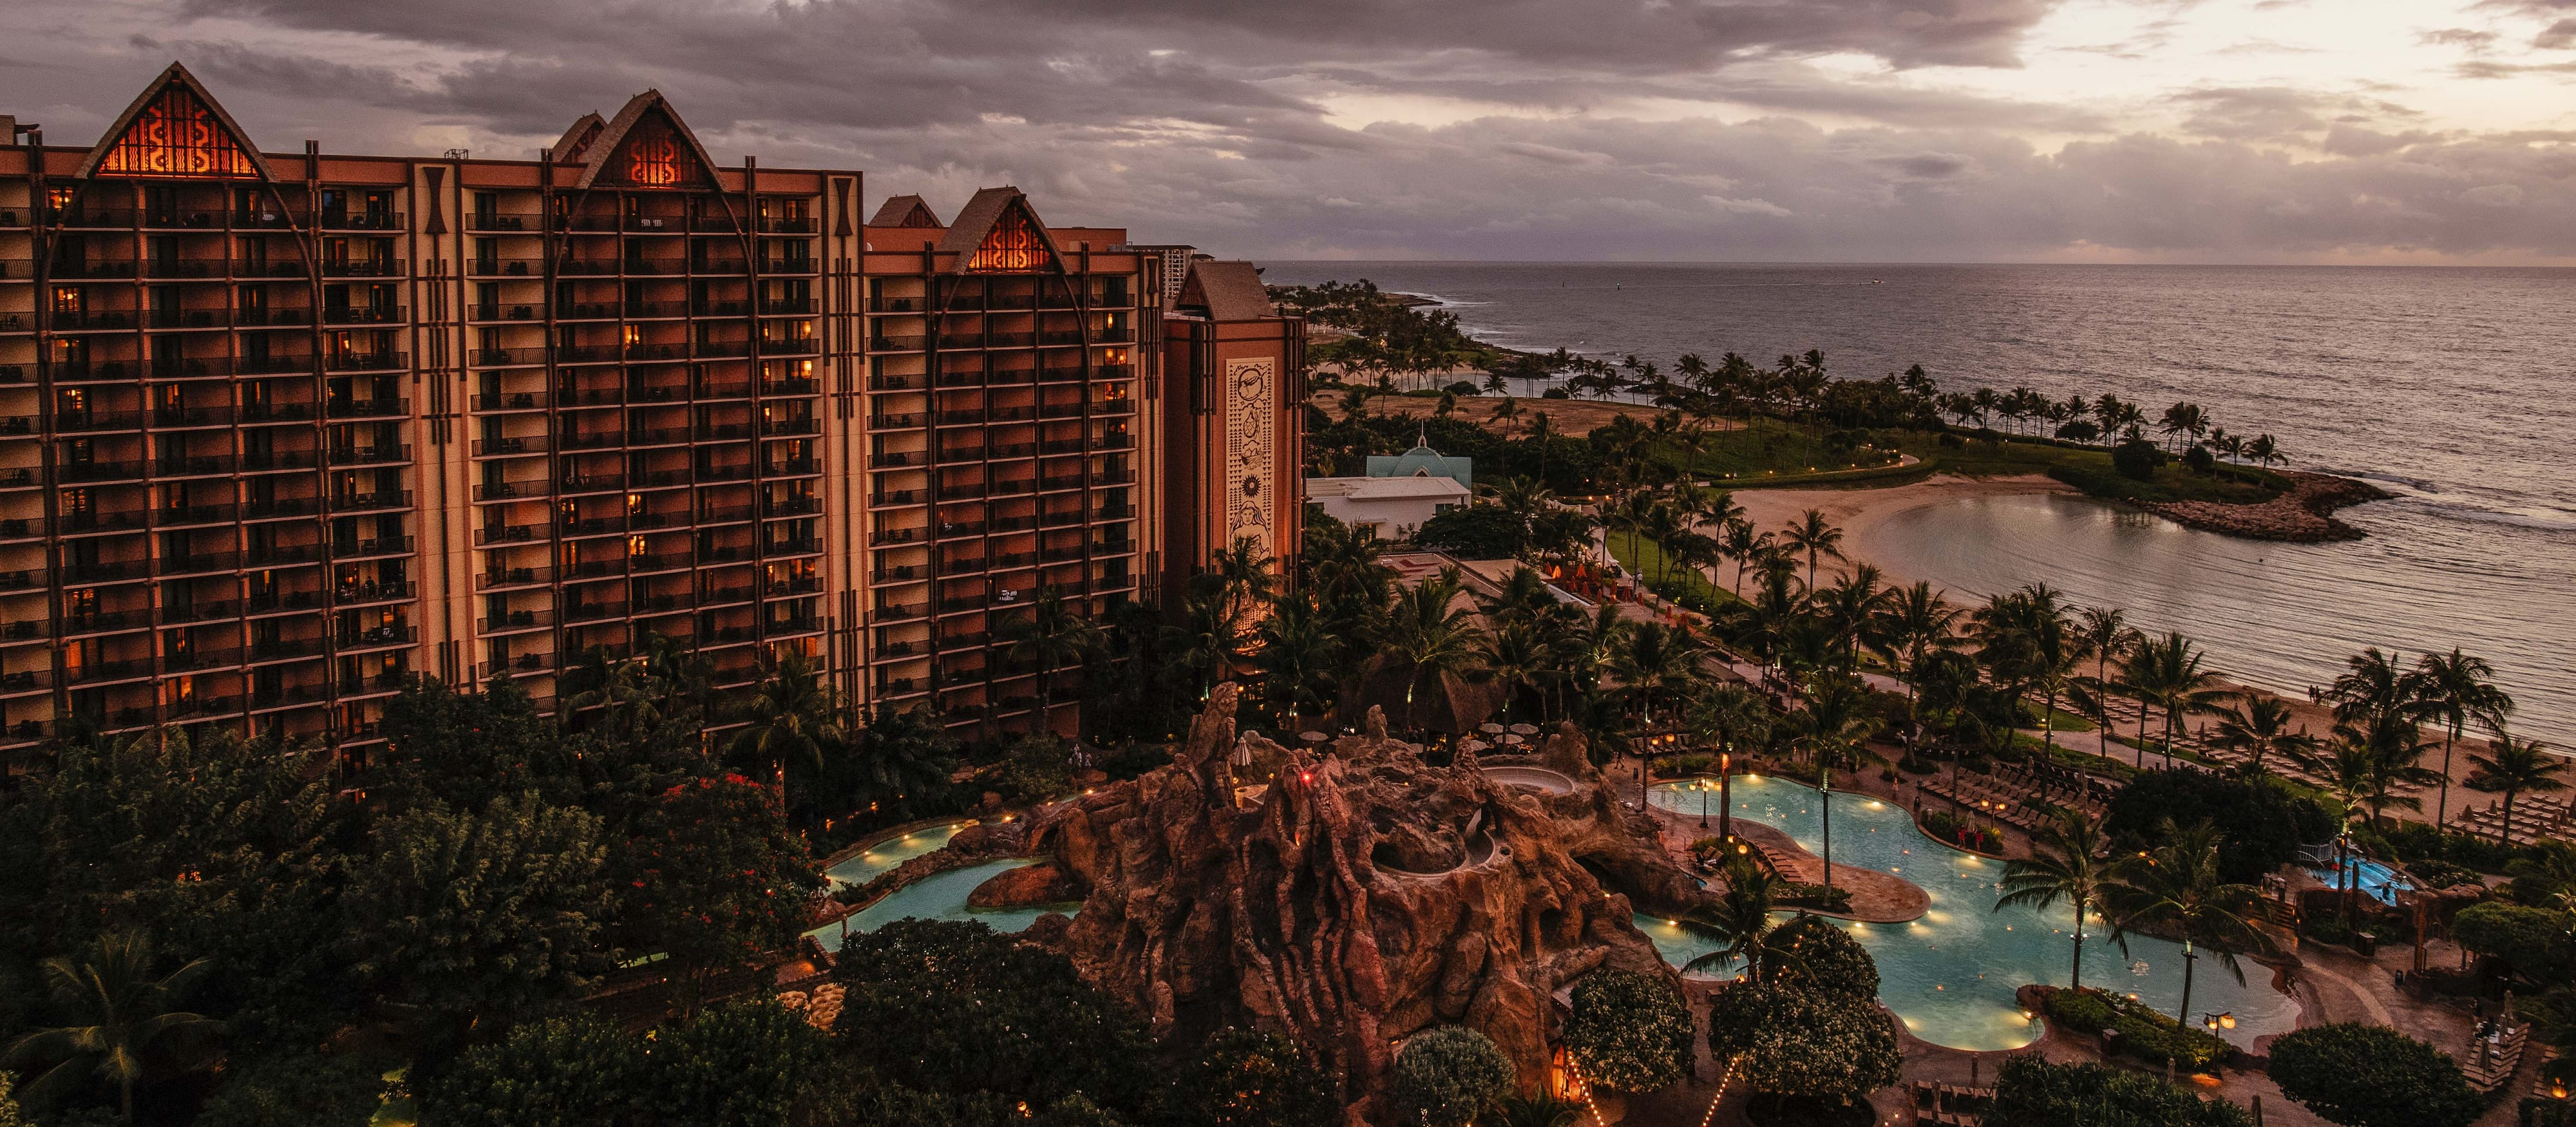 Dark clouds loom over the hotel, pools and lagoon of Aulani Resort